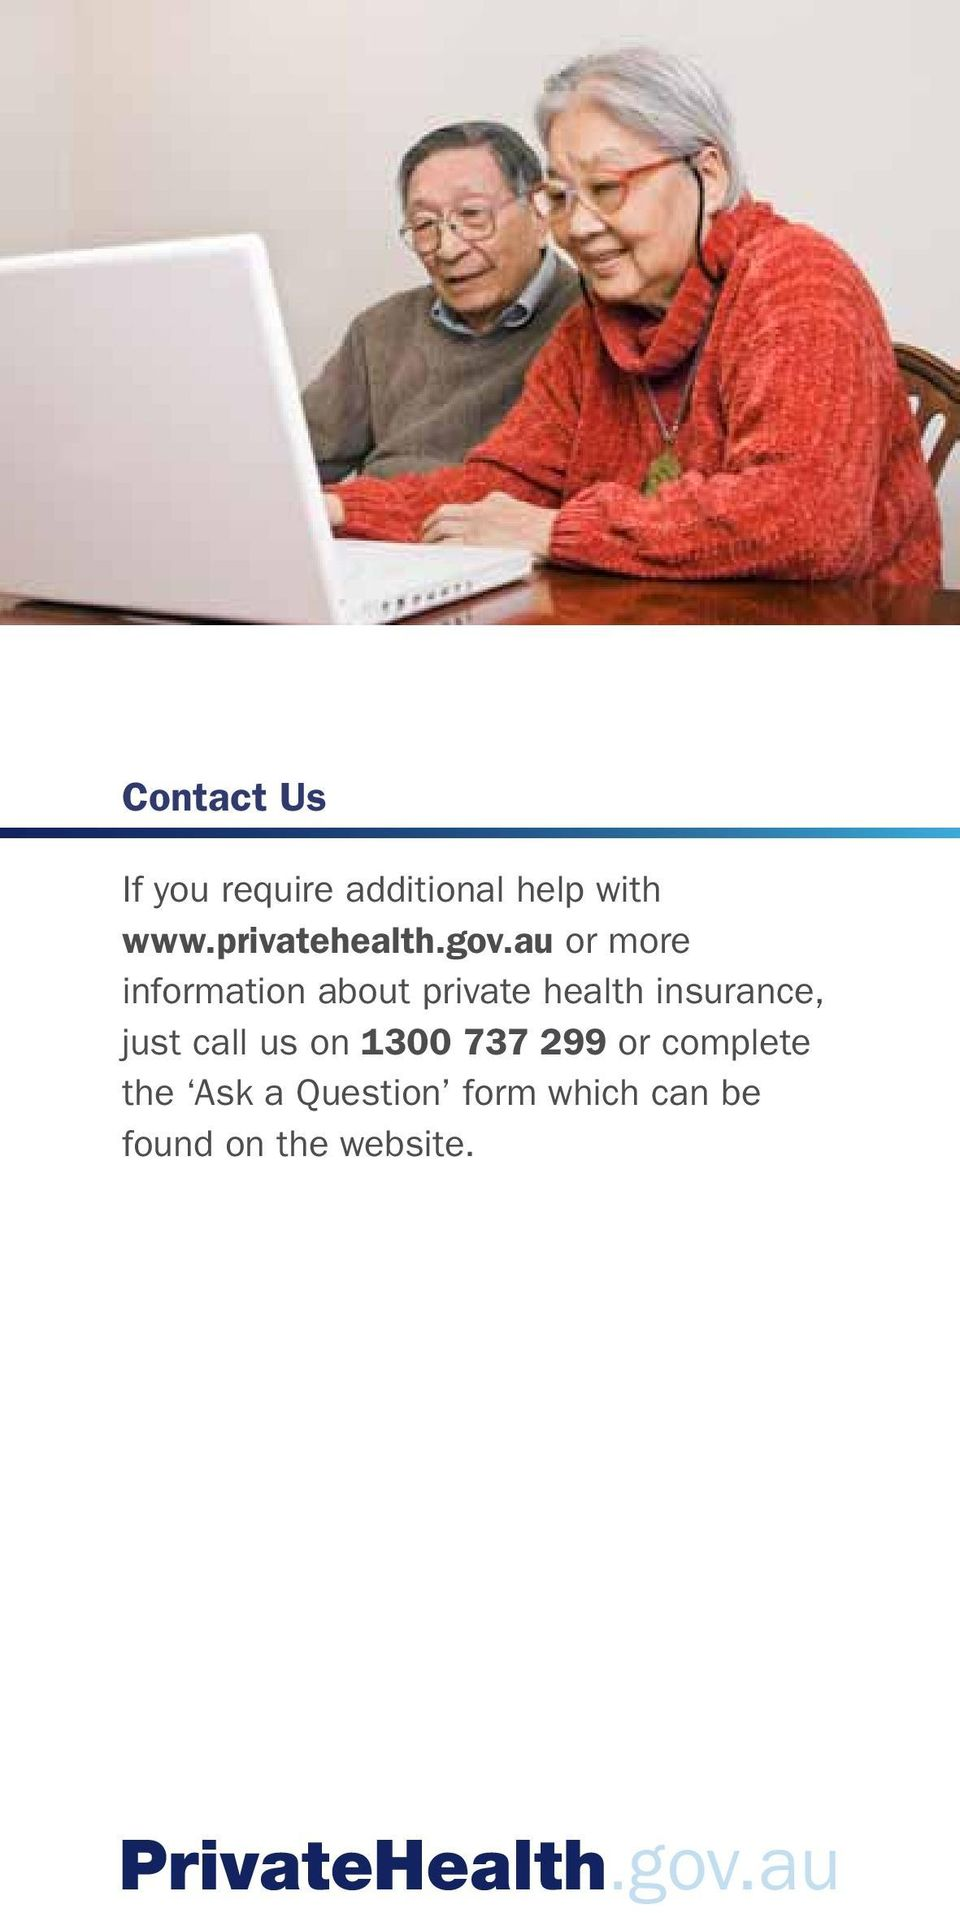 au or more information about private health insurance, just